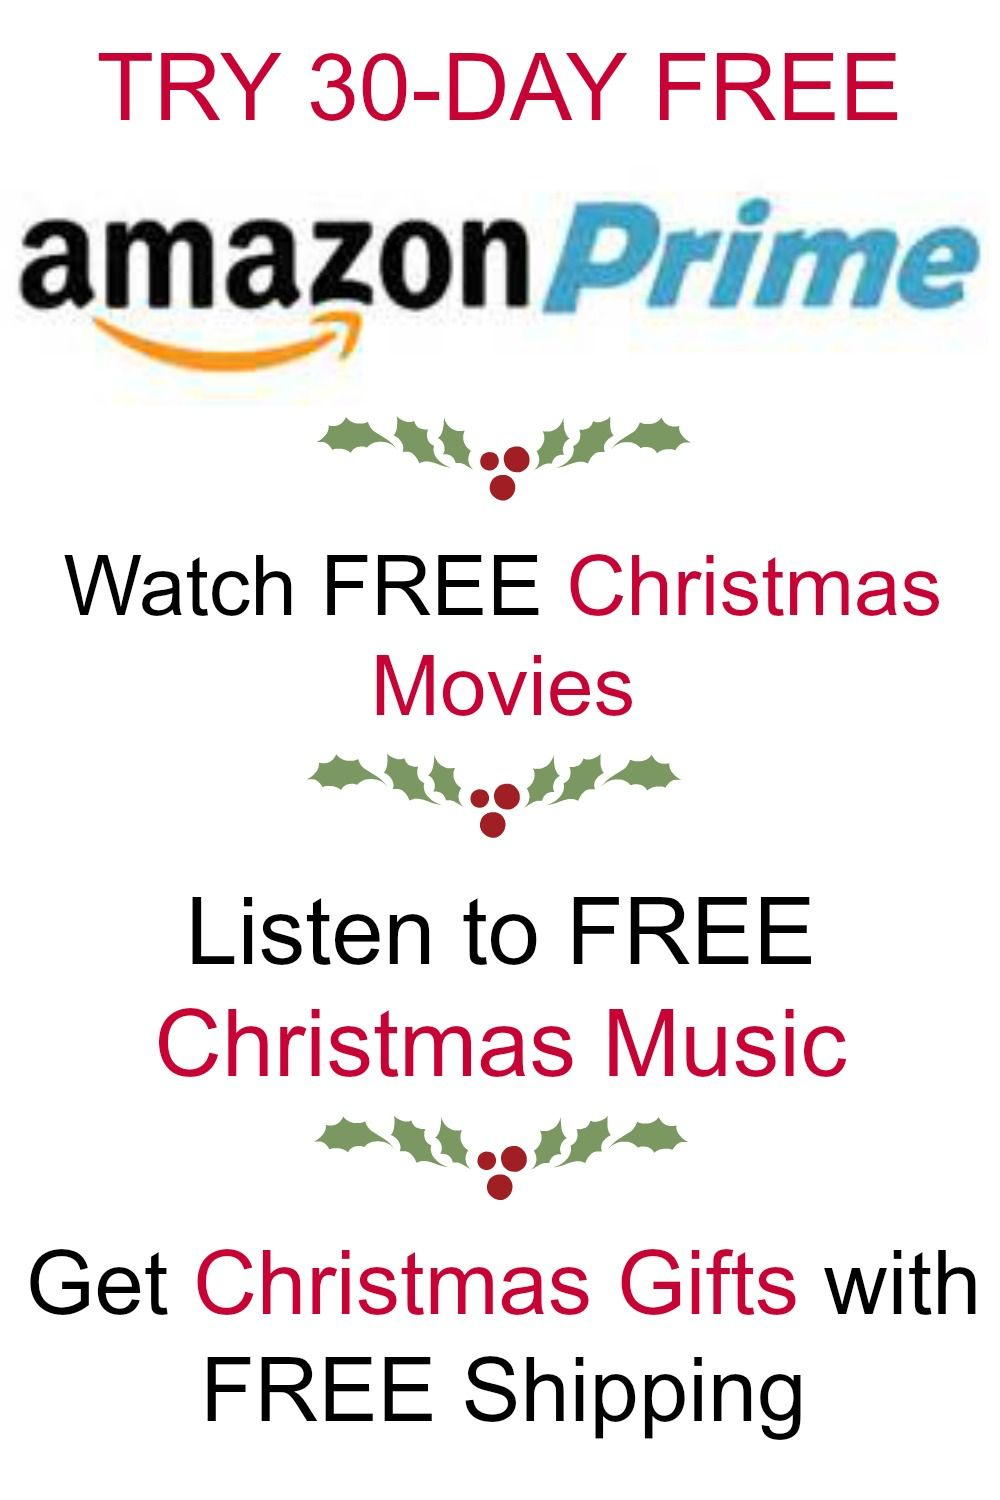 Try amazon prime 30 days for free. Watch free Christmas